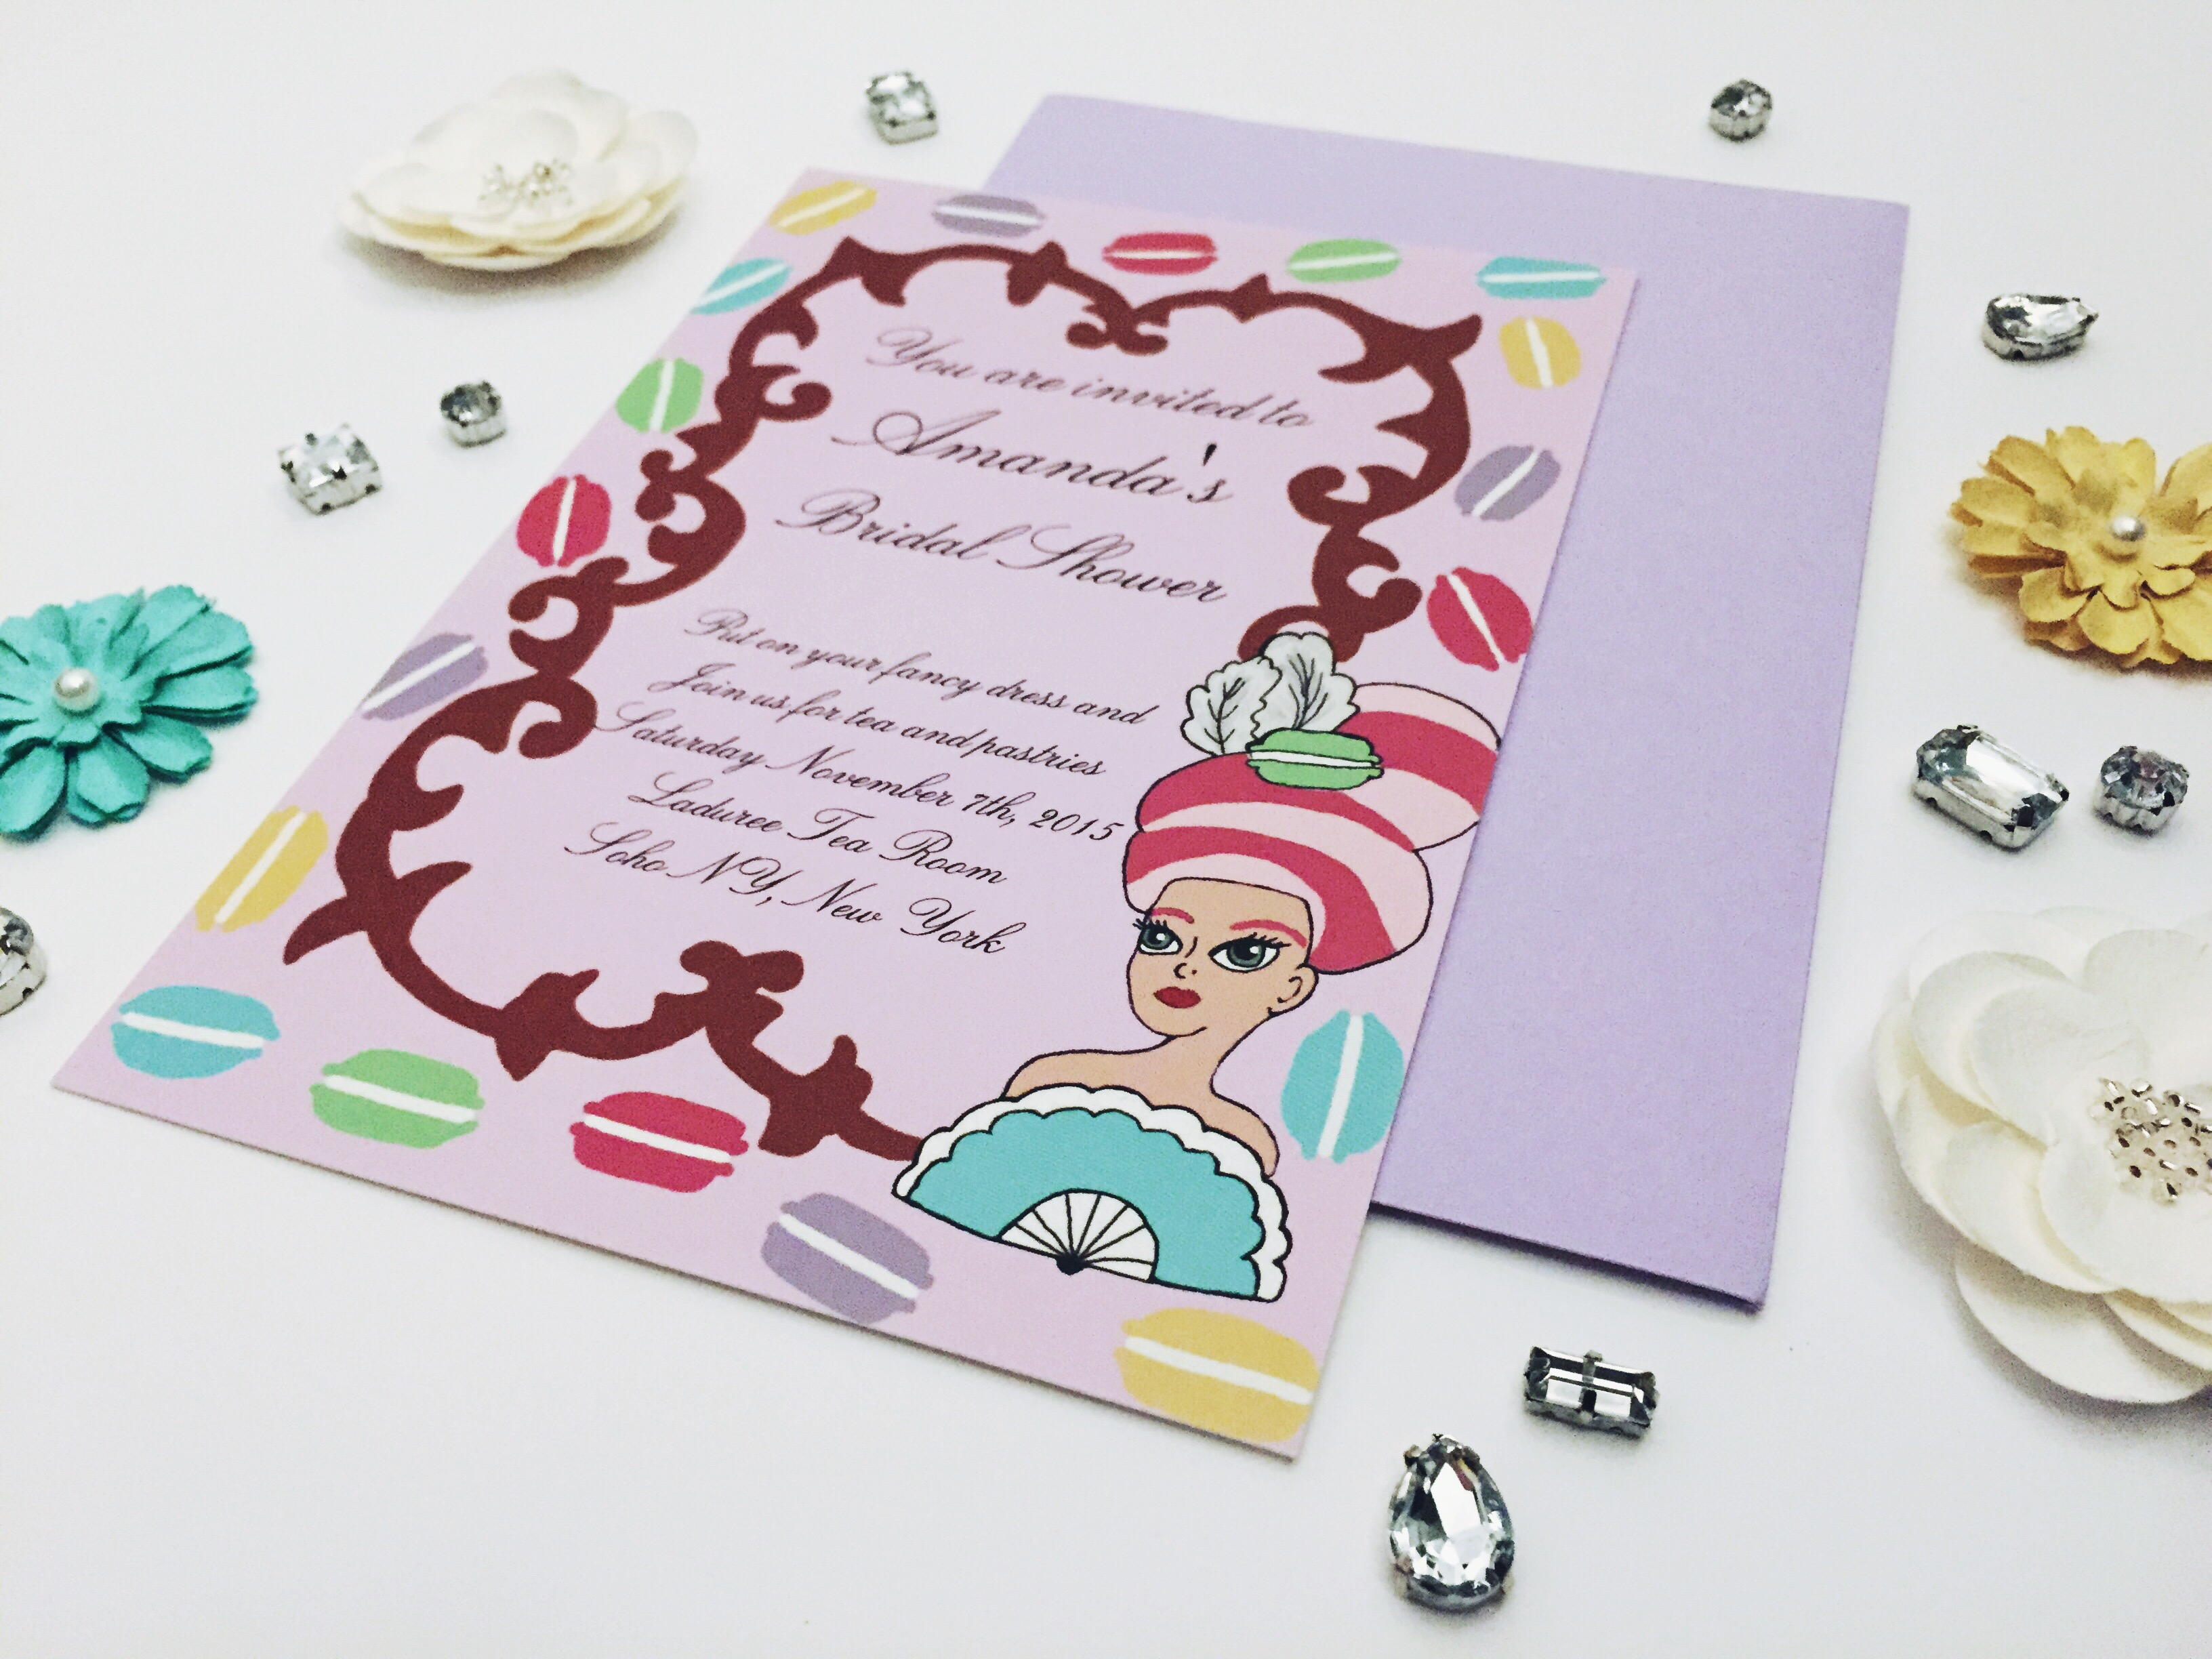 Marie Antoinette macaron bridal shower invitations and favors by ...